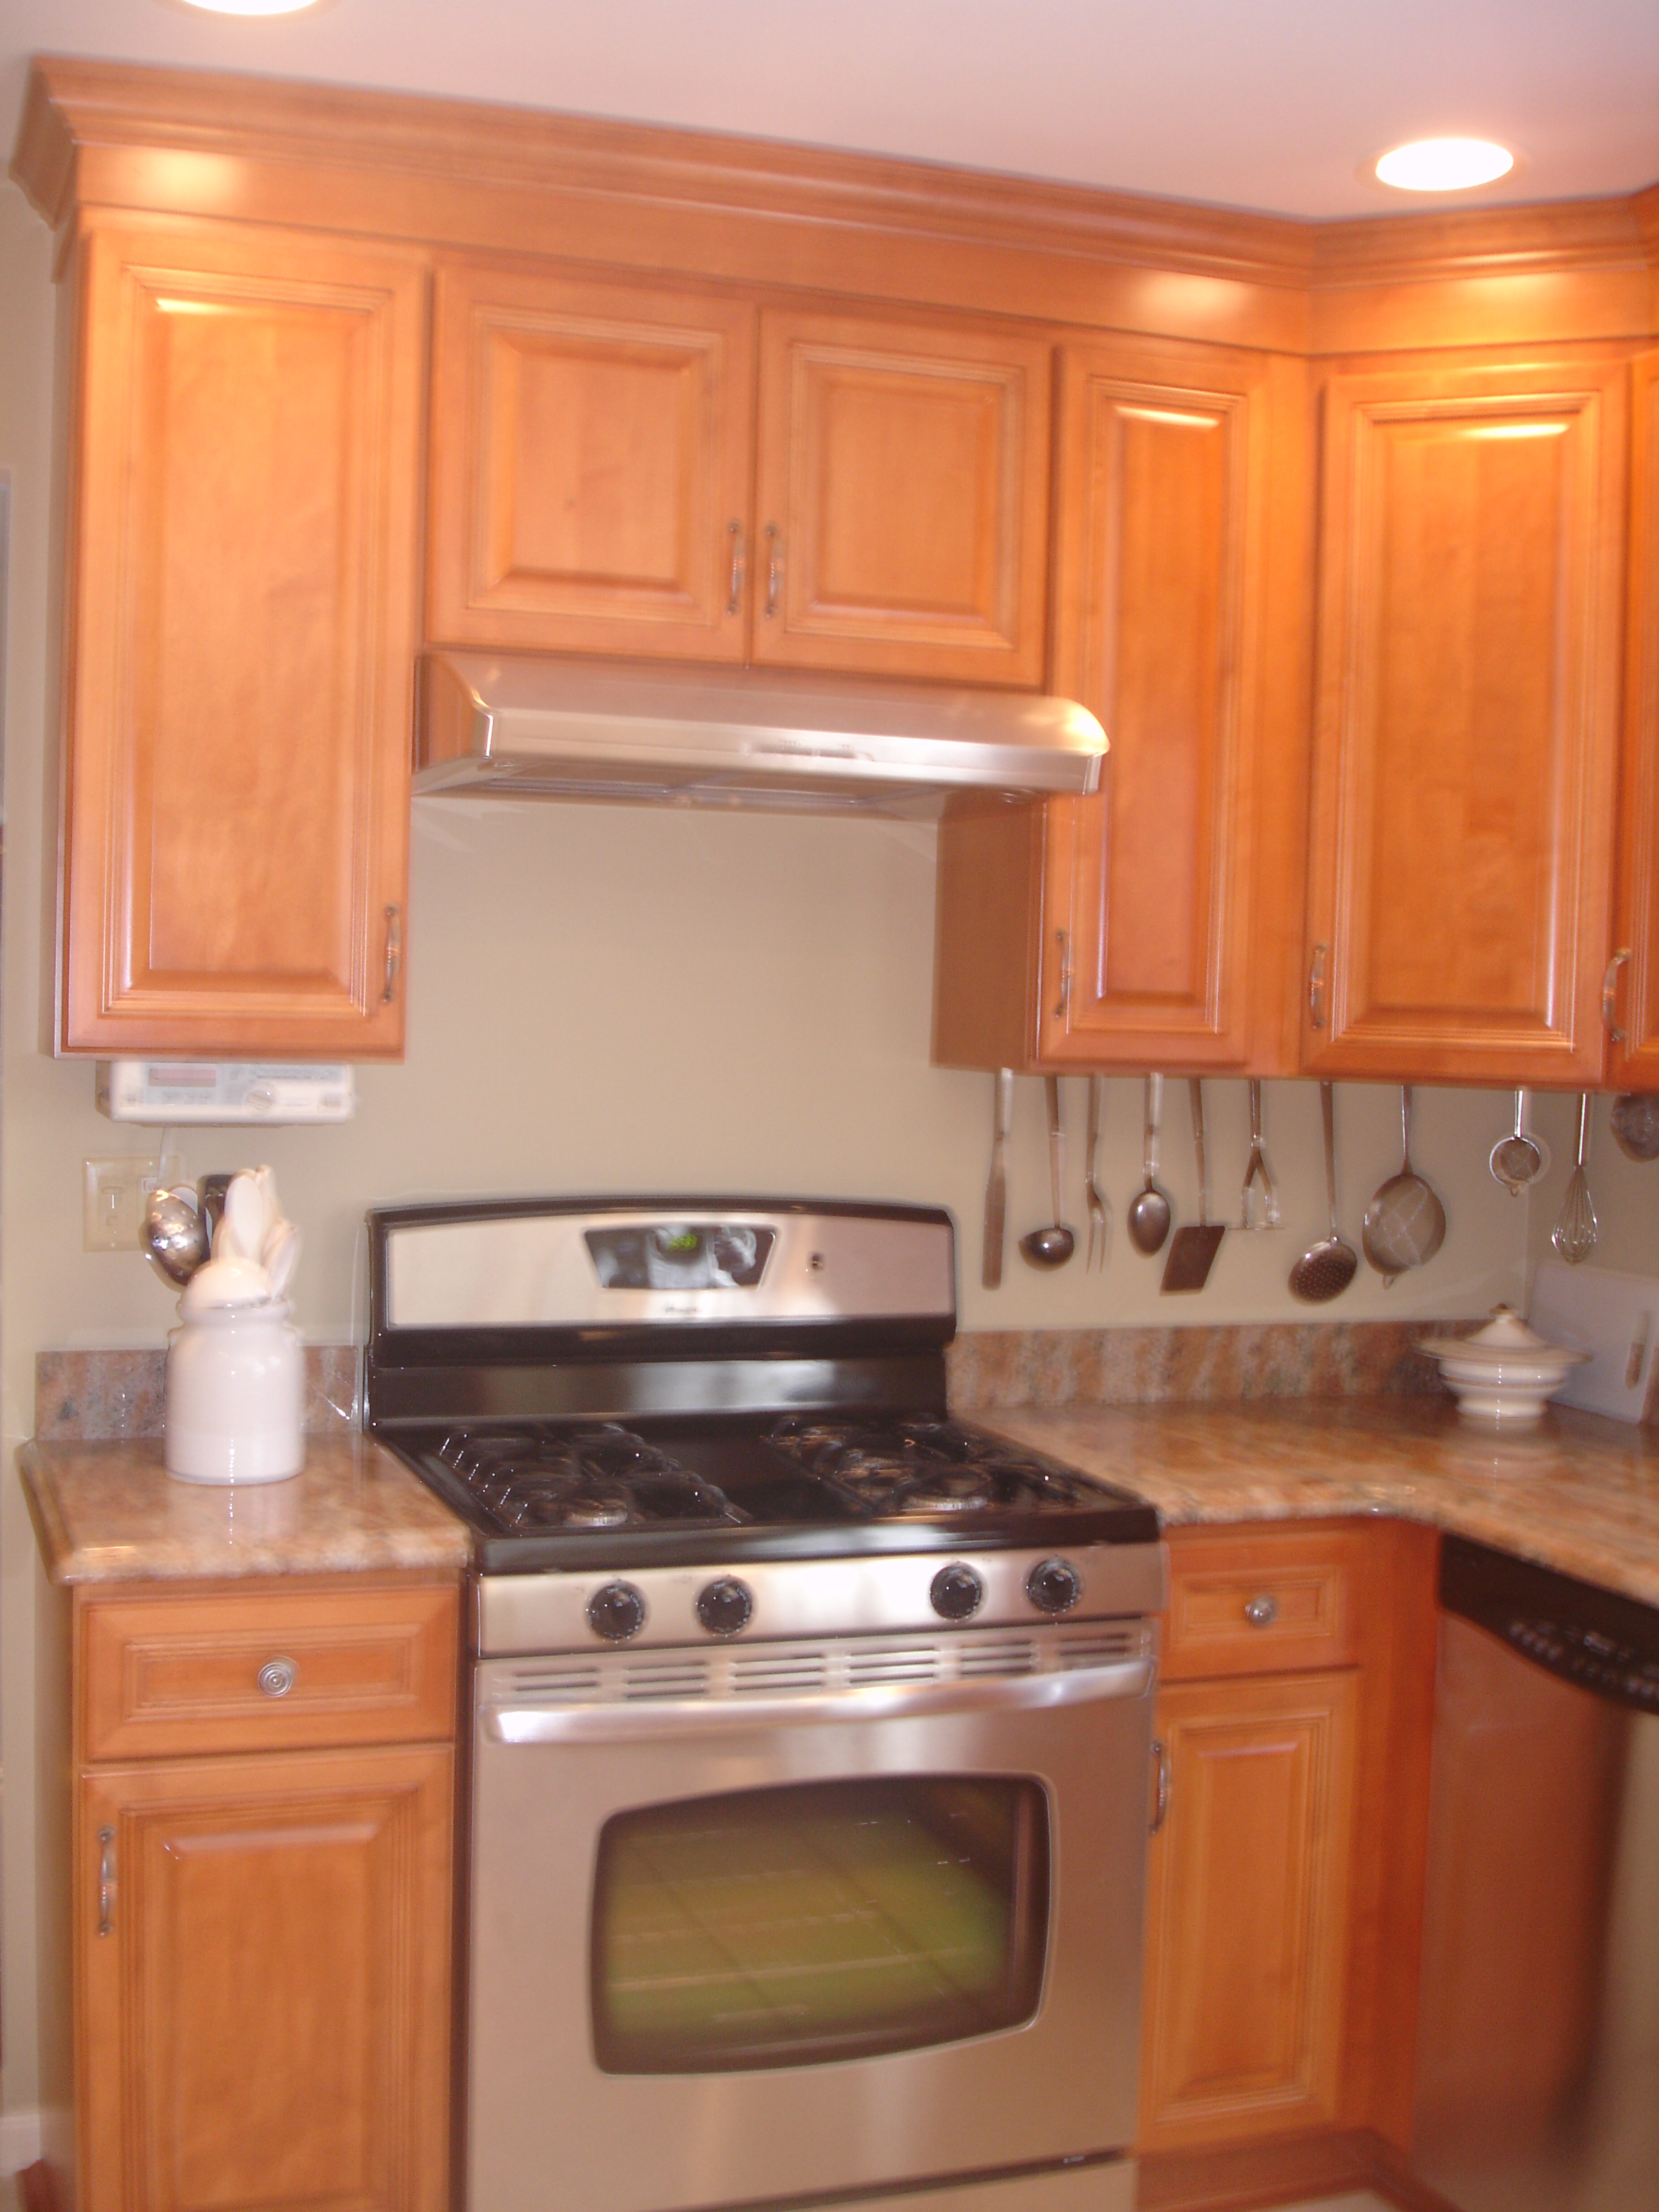 Another Happy Kitchen Customer-May 17 2008